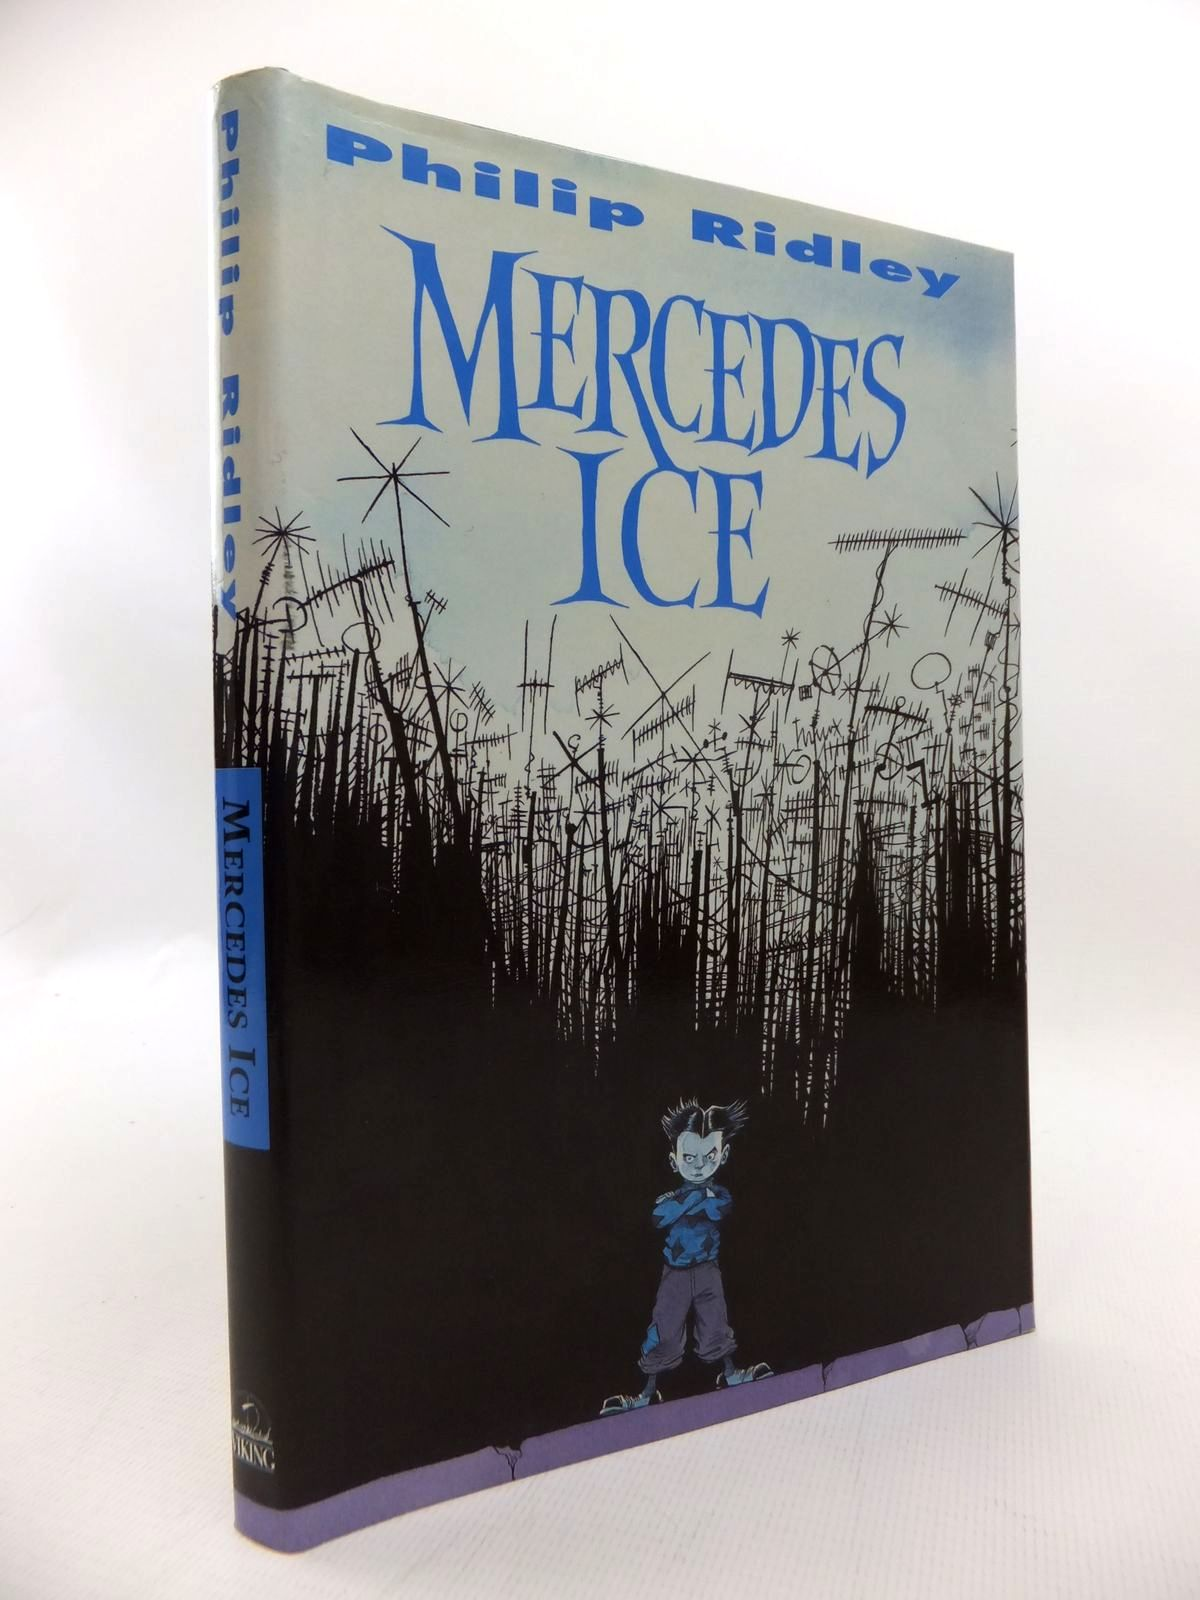 Photo of MERCEDES ICE: AN URBAN FAIRY STORY FOR MODERN CHILDREN written by Ridley, Philip illustrated by Riddell, Chris published by Viking (STOCK CODE: 1814610)  for sale by Stella & Rose's Books